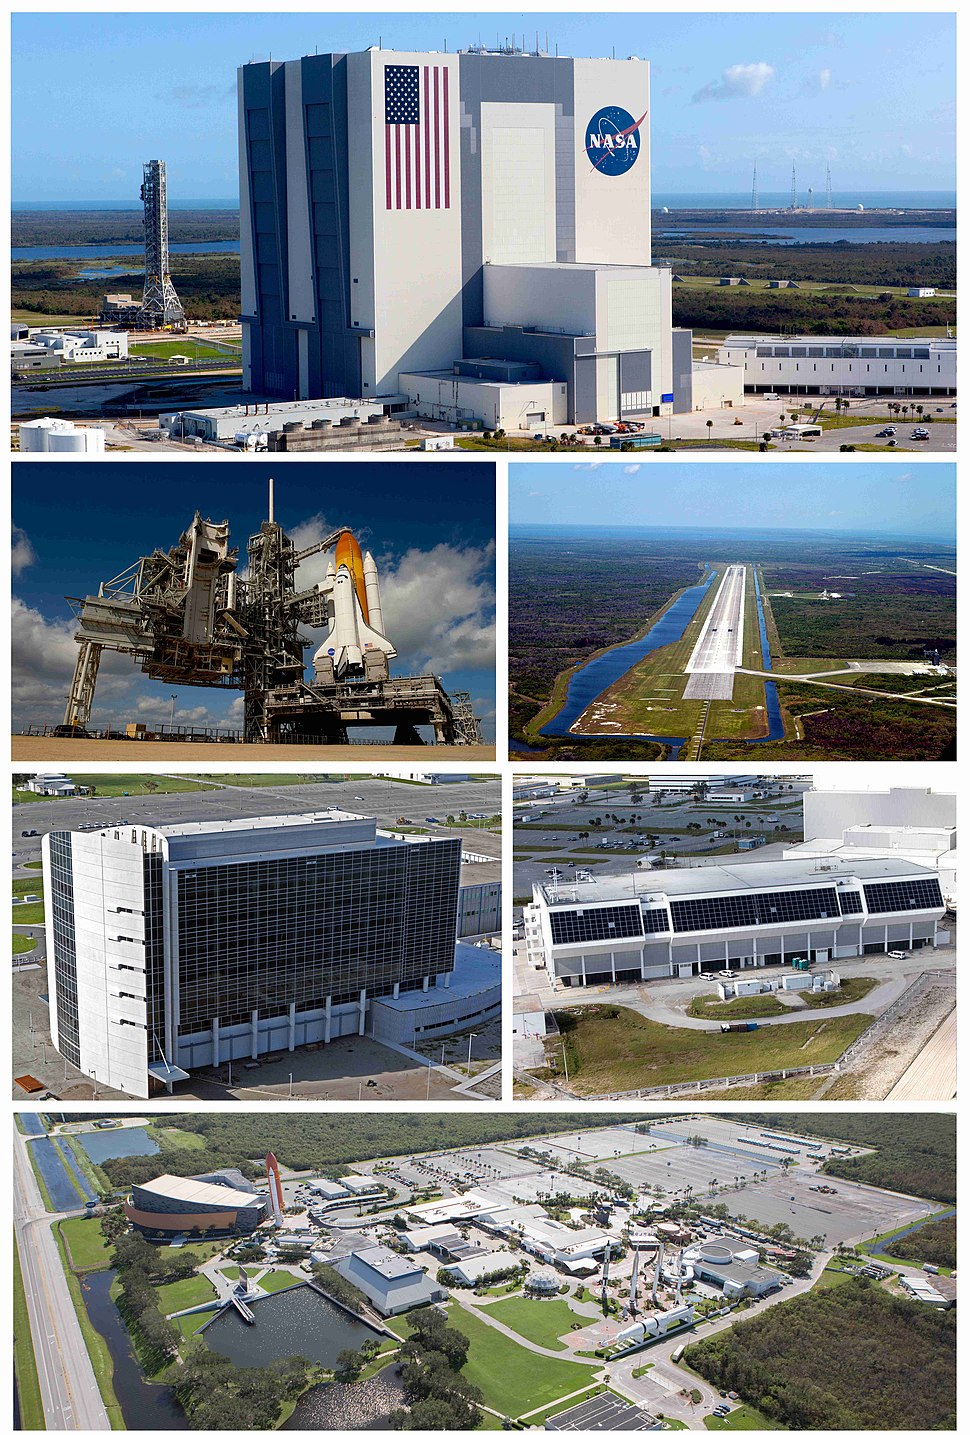 Kennedy Space Center composite photograph